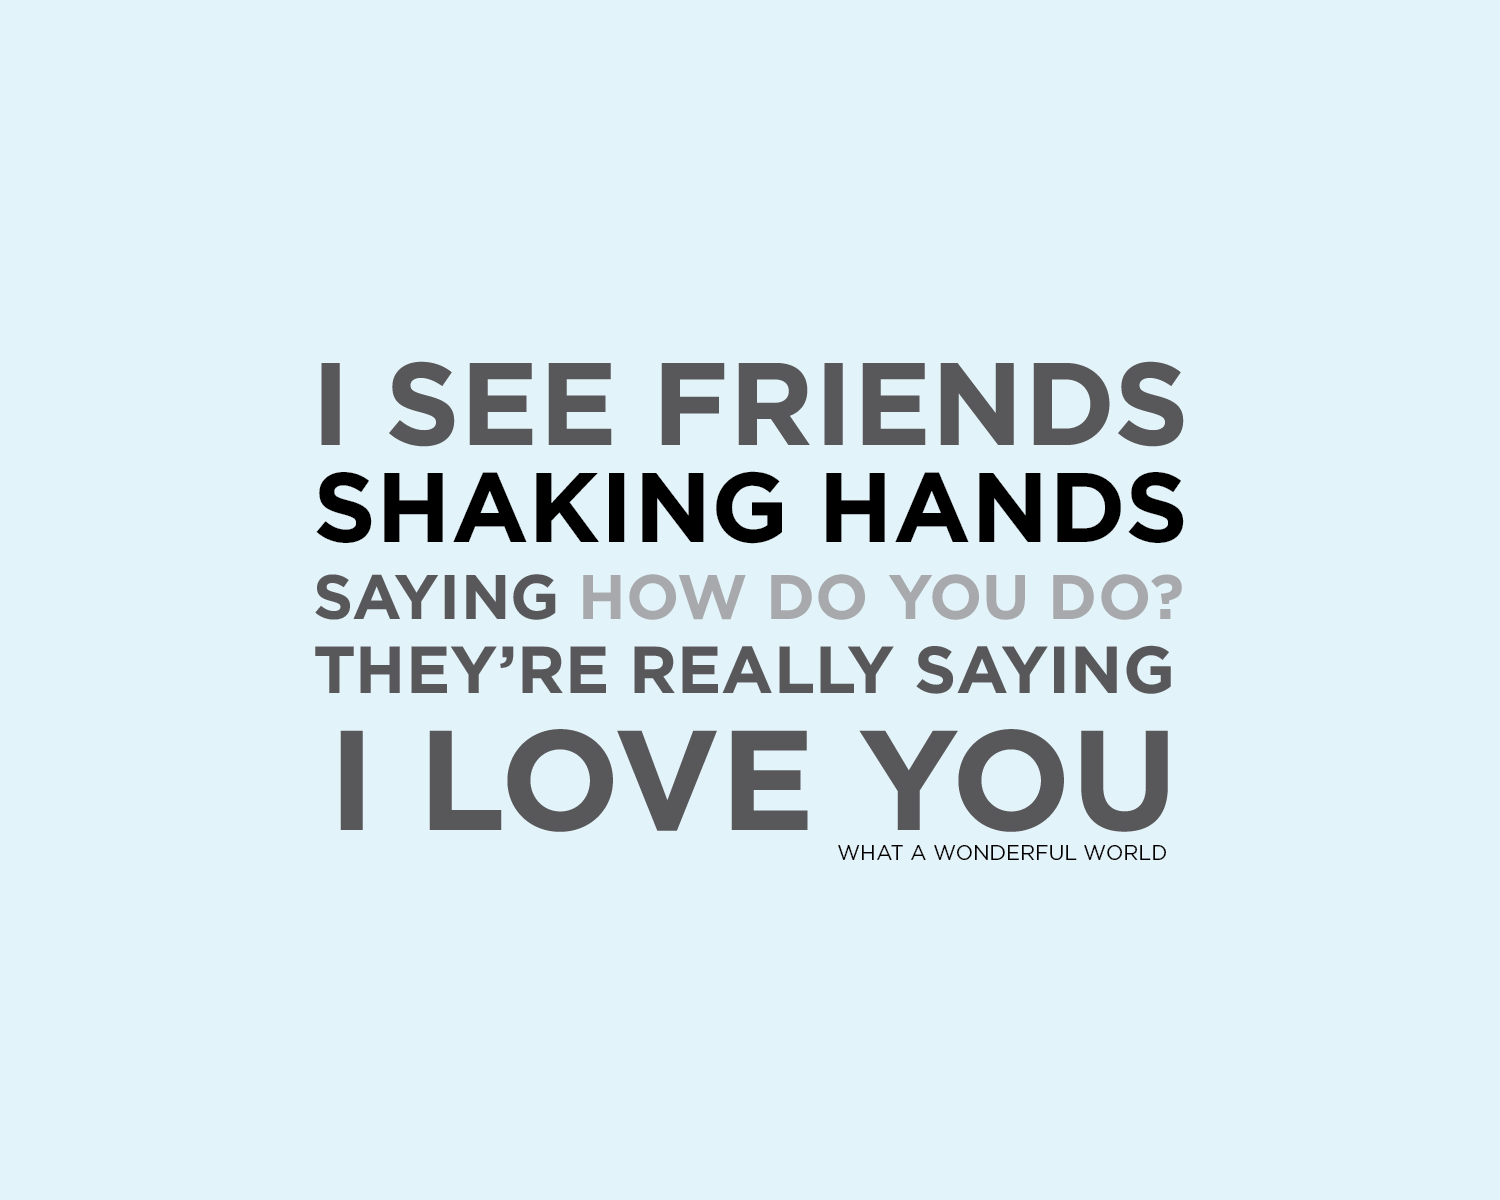 Song Quotes About Friendship Music Lyrics Quotes About Friendship Friendship Song Lyrics